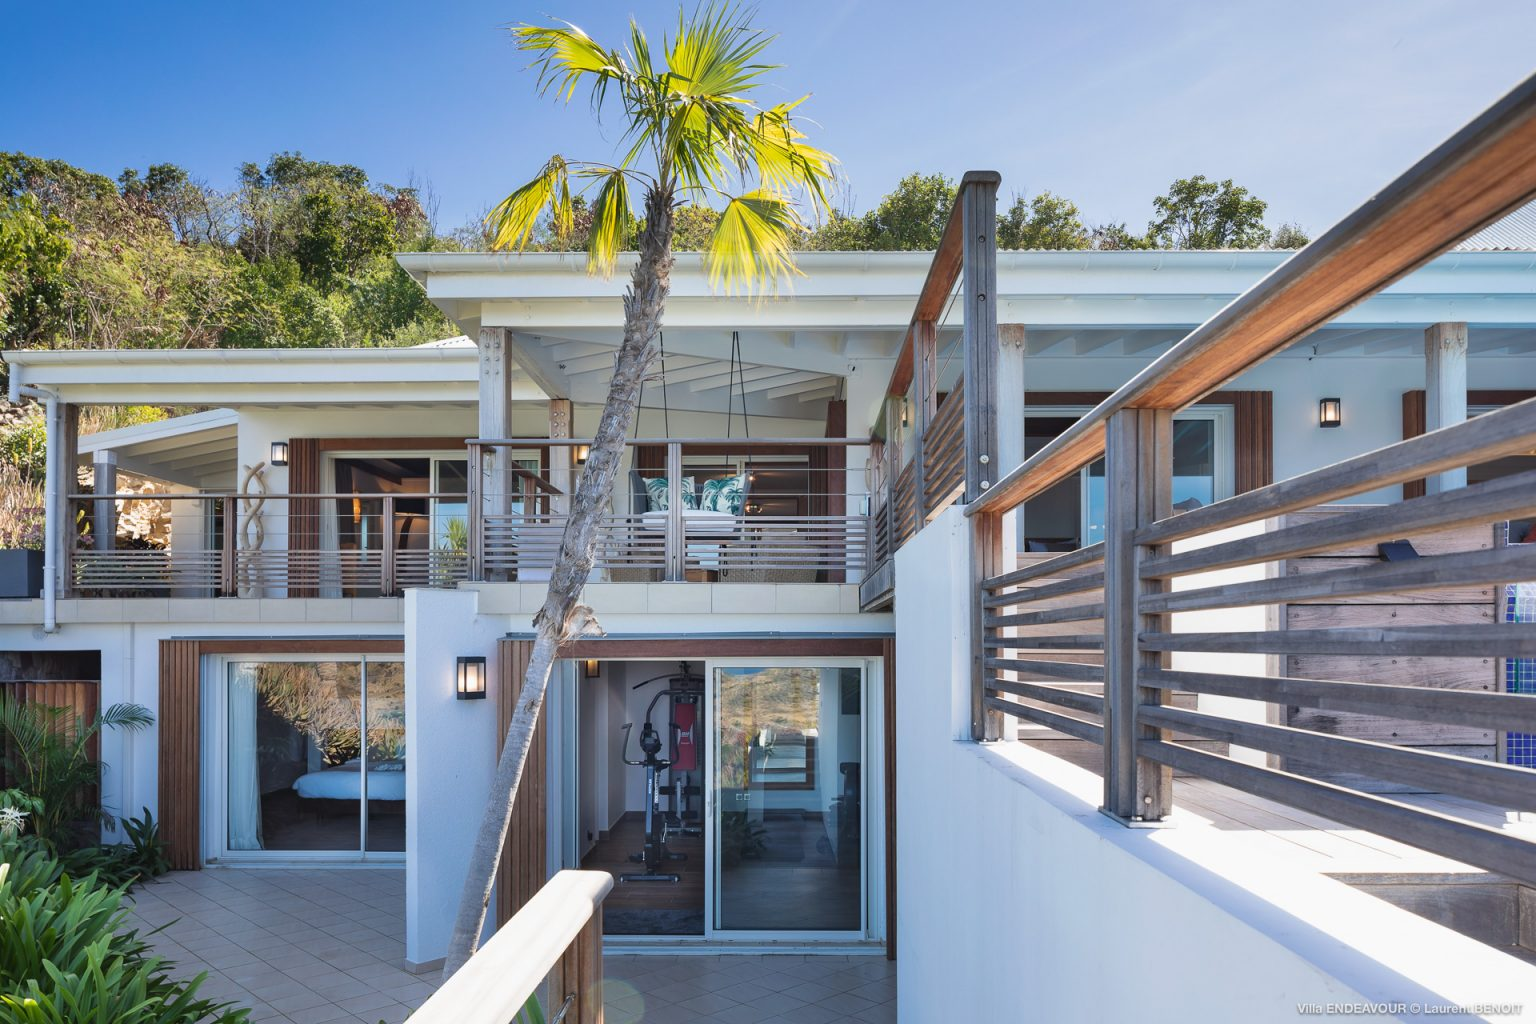 Villa Endeavour - Peaceful Villa Rental St Barth Toiny Seaview - Outside view